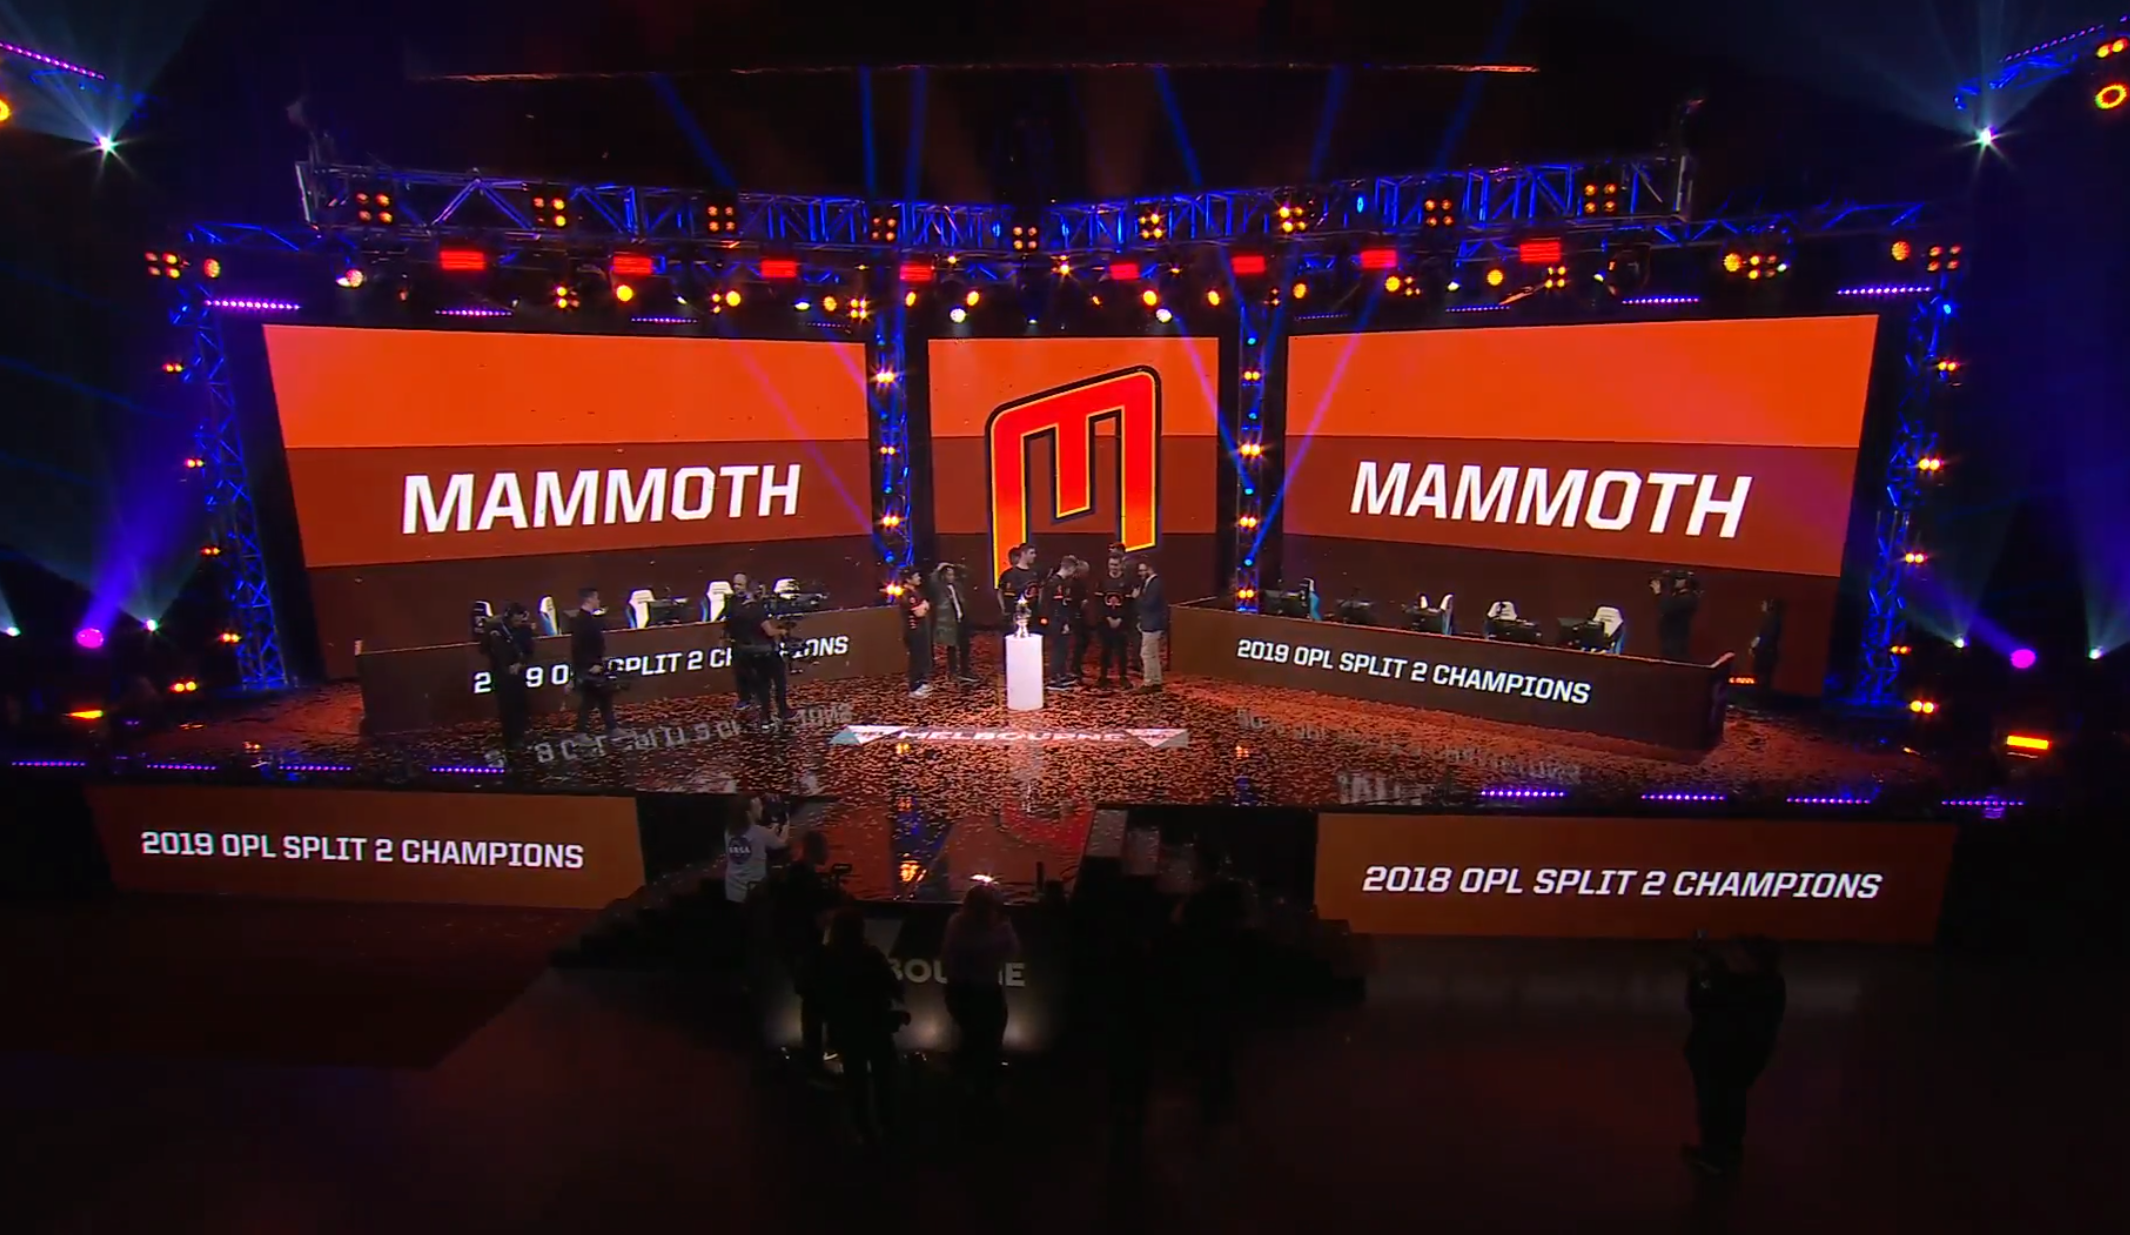 Team Mammoth sweep Chiefs in the OPL finals to secure a spot at Worlds